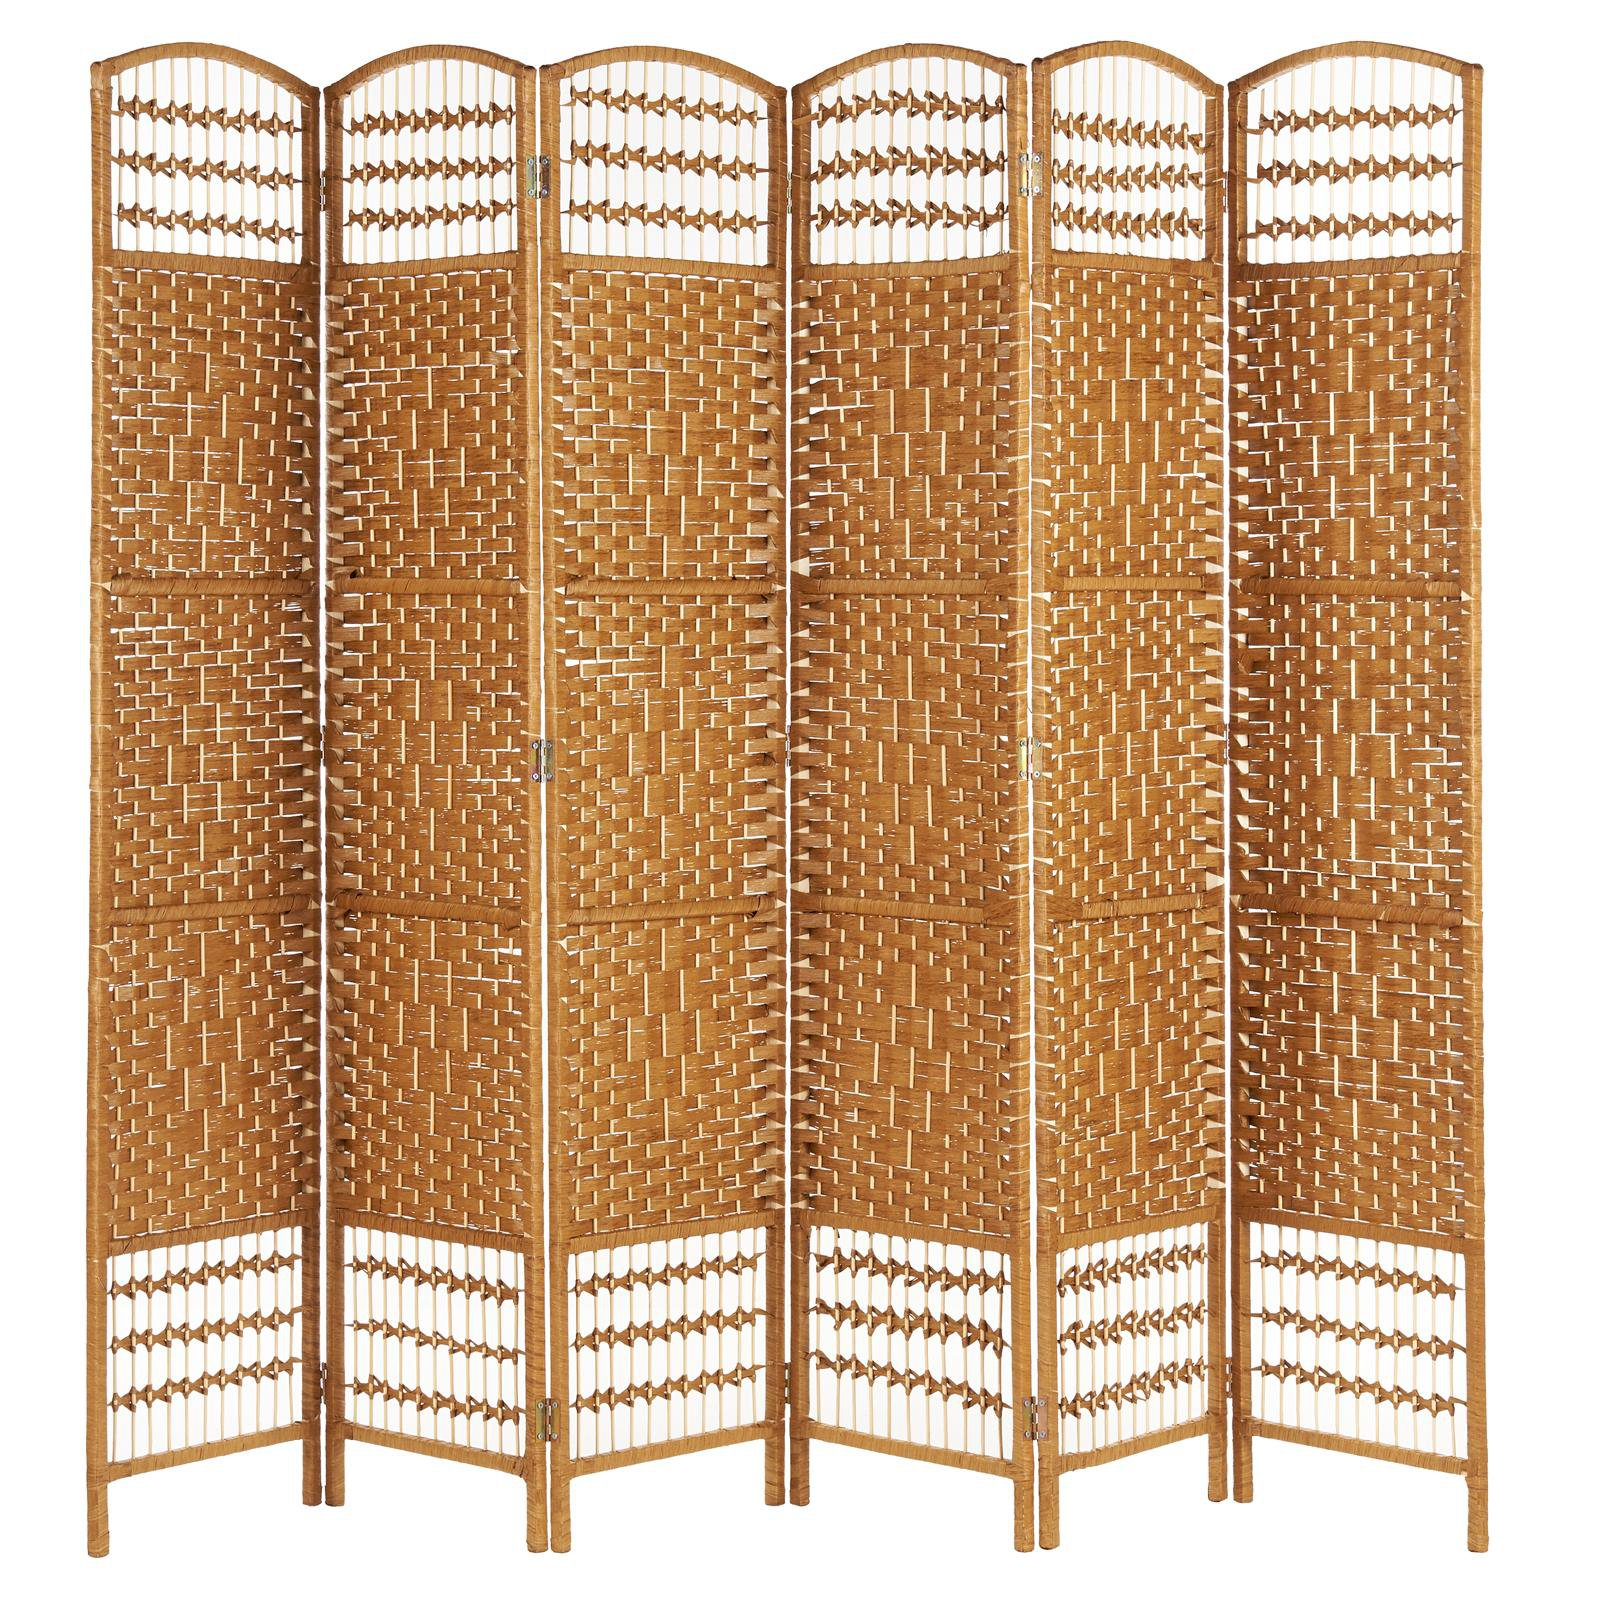 image-Hartleys Hand Made Wicker Room Divider - Natural - 6 Panel